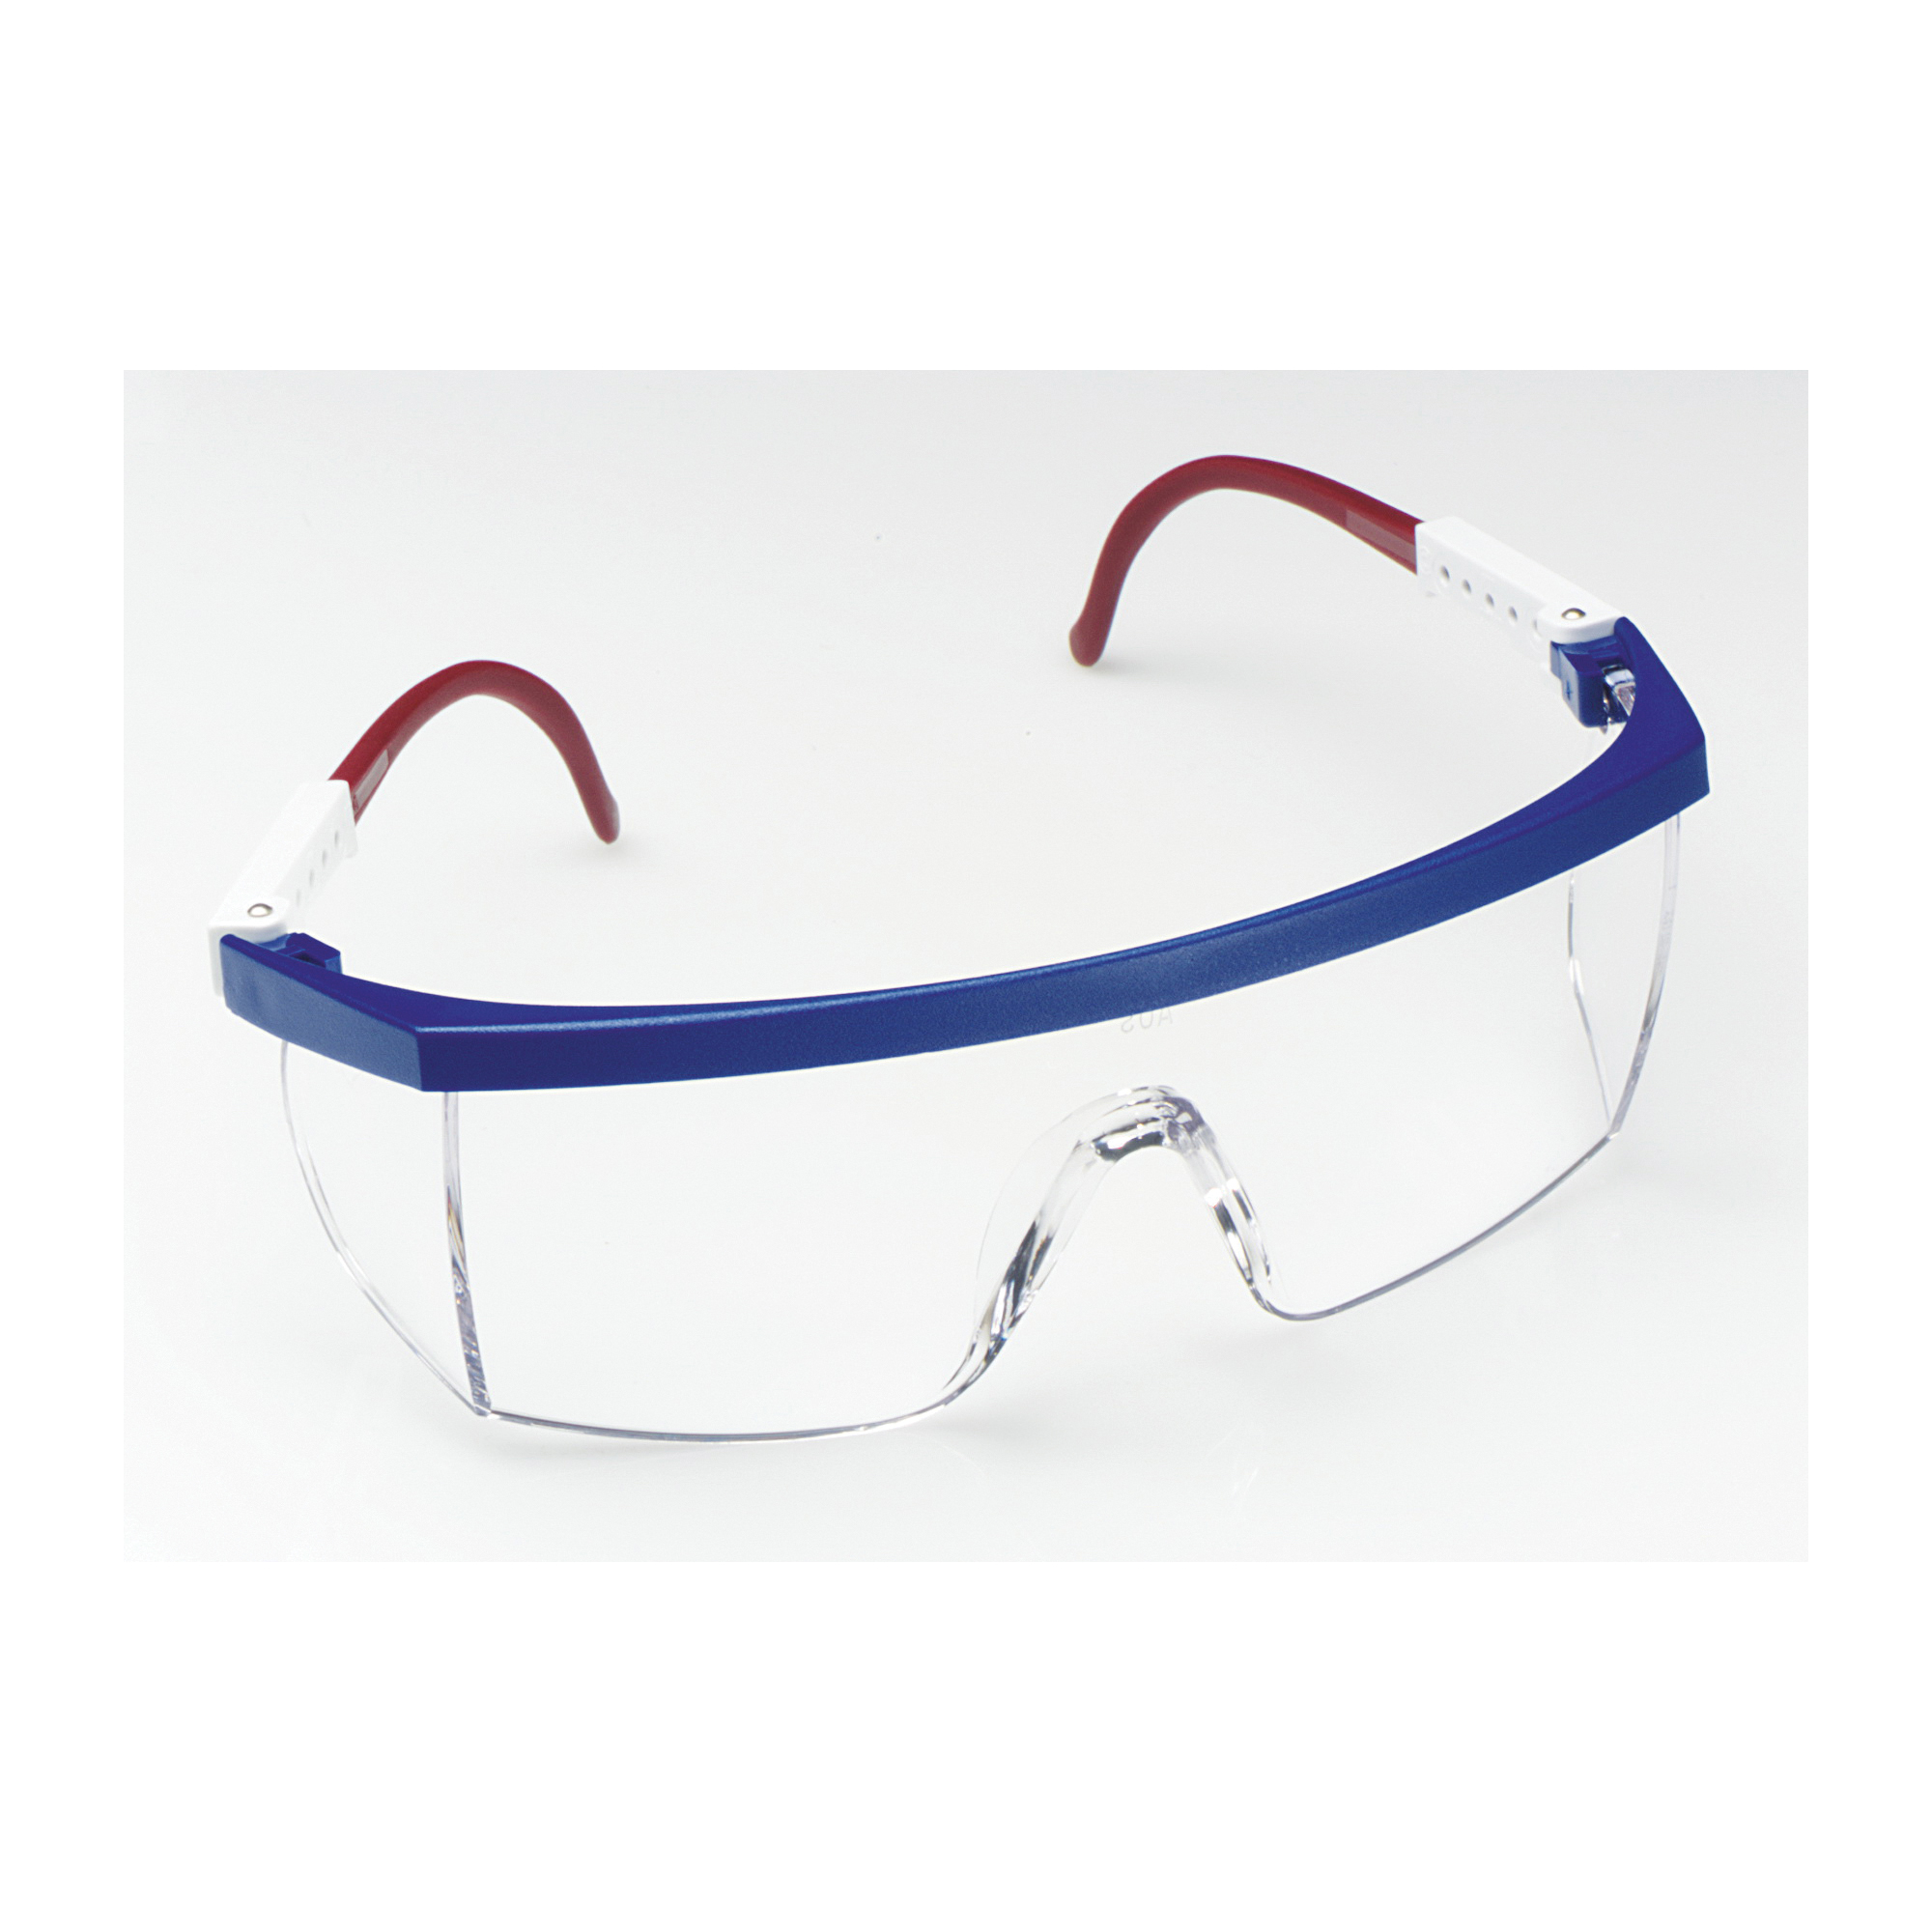 3M™ Nassau Plus™ 078371-62268 14327-00000-20 Economy Safety Glasses, DX™ Anti-Fog Clear Lens, Half Framed Blue/Red/White Nylon Frame, Polycarbonate Lens, Specifications Met: ANSI Z87.1-2015, Z87.1-2003 CSA Z94.3-2007